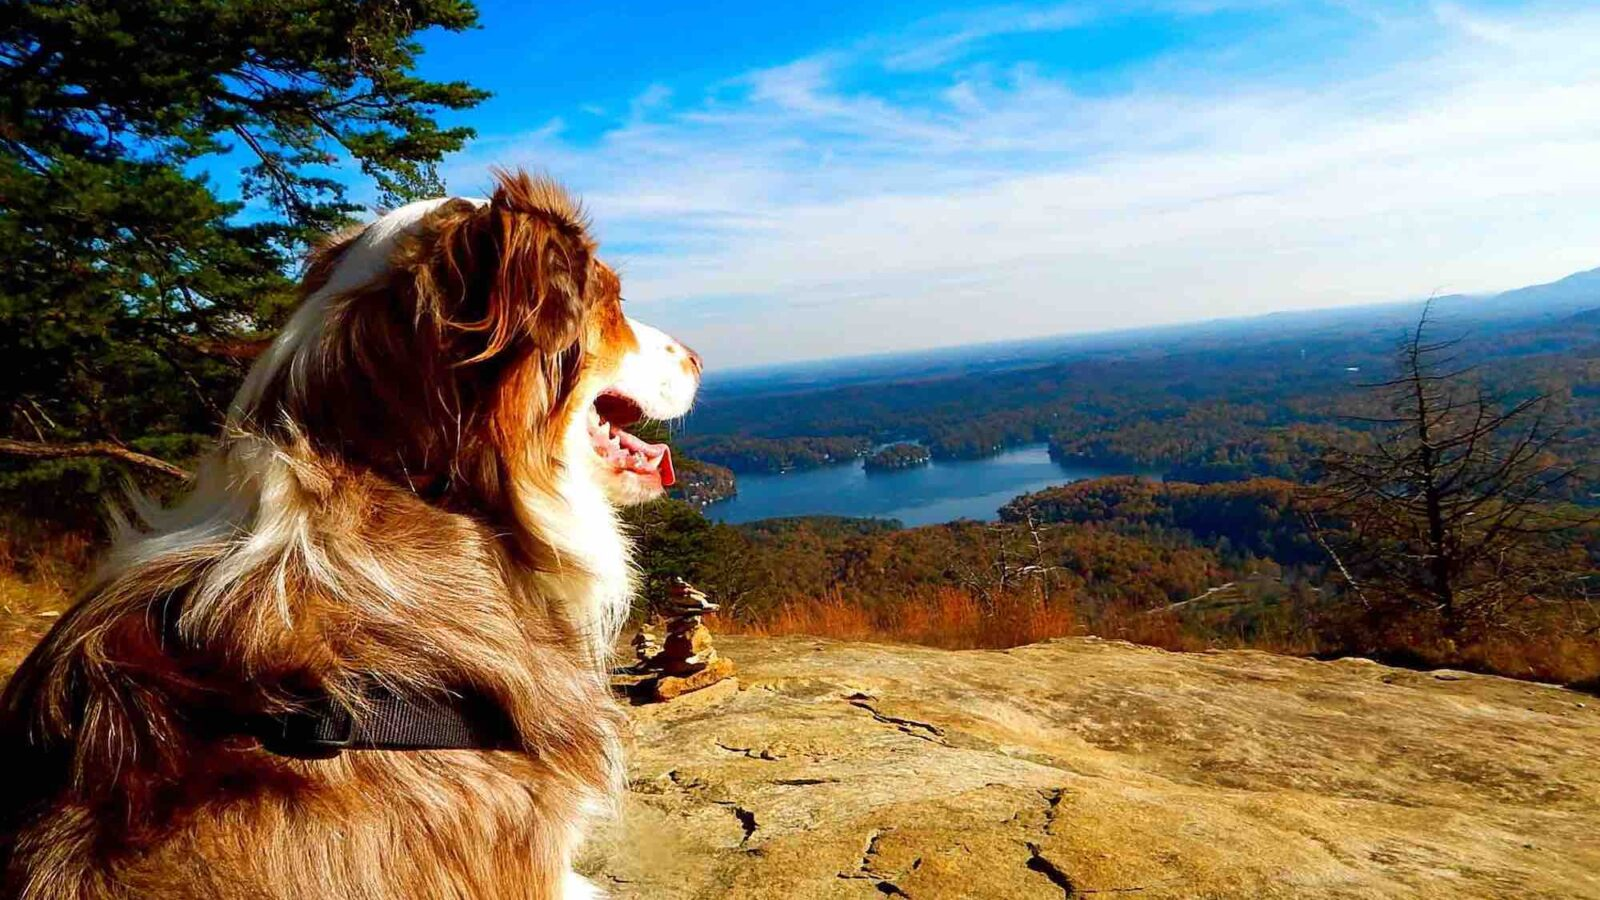 Contact Dog Gone Real - Australian Shepherd Hiking